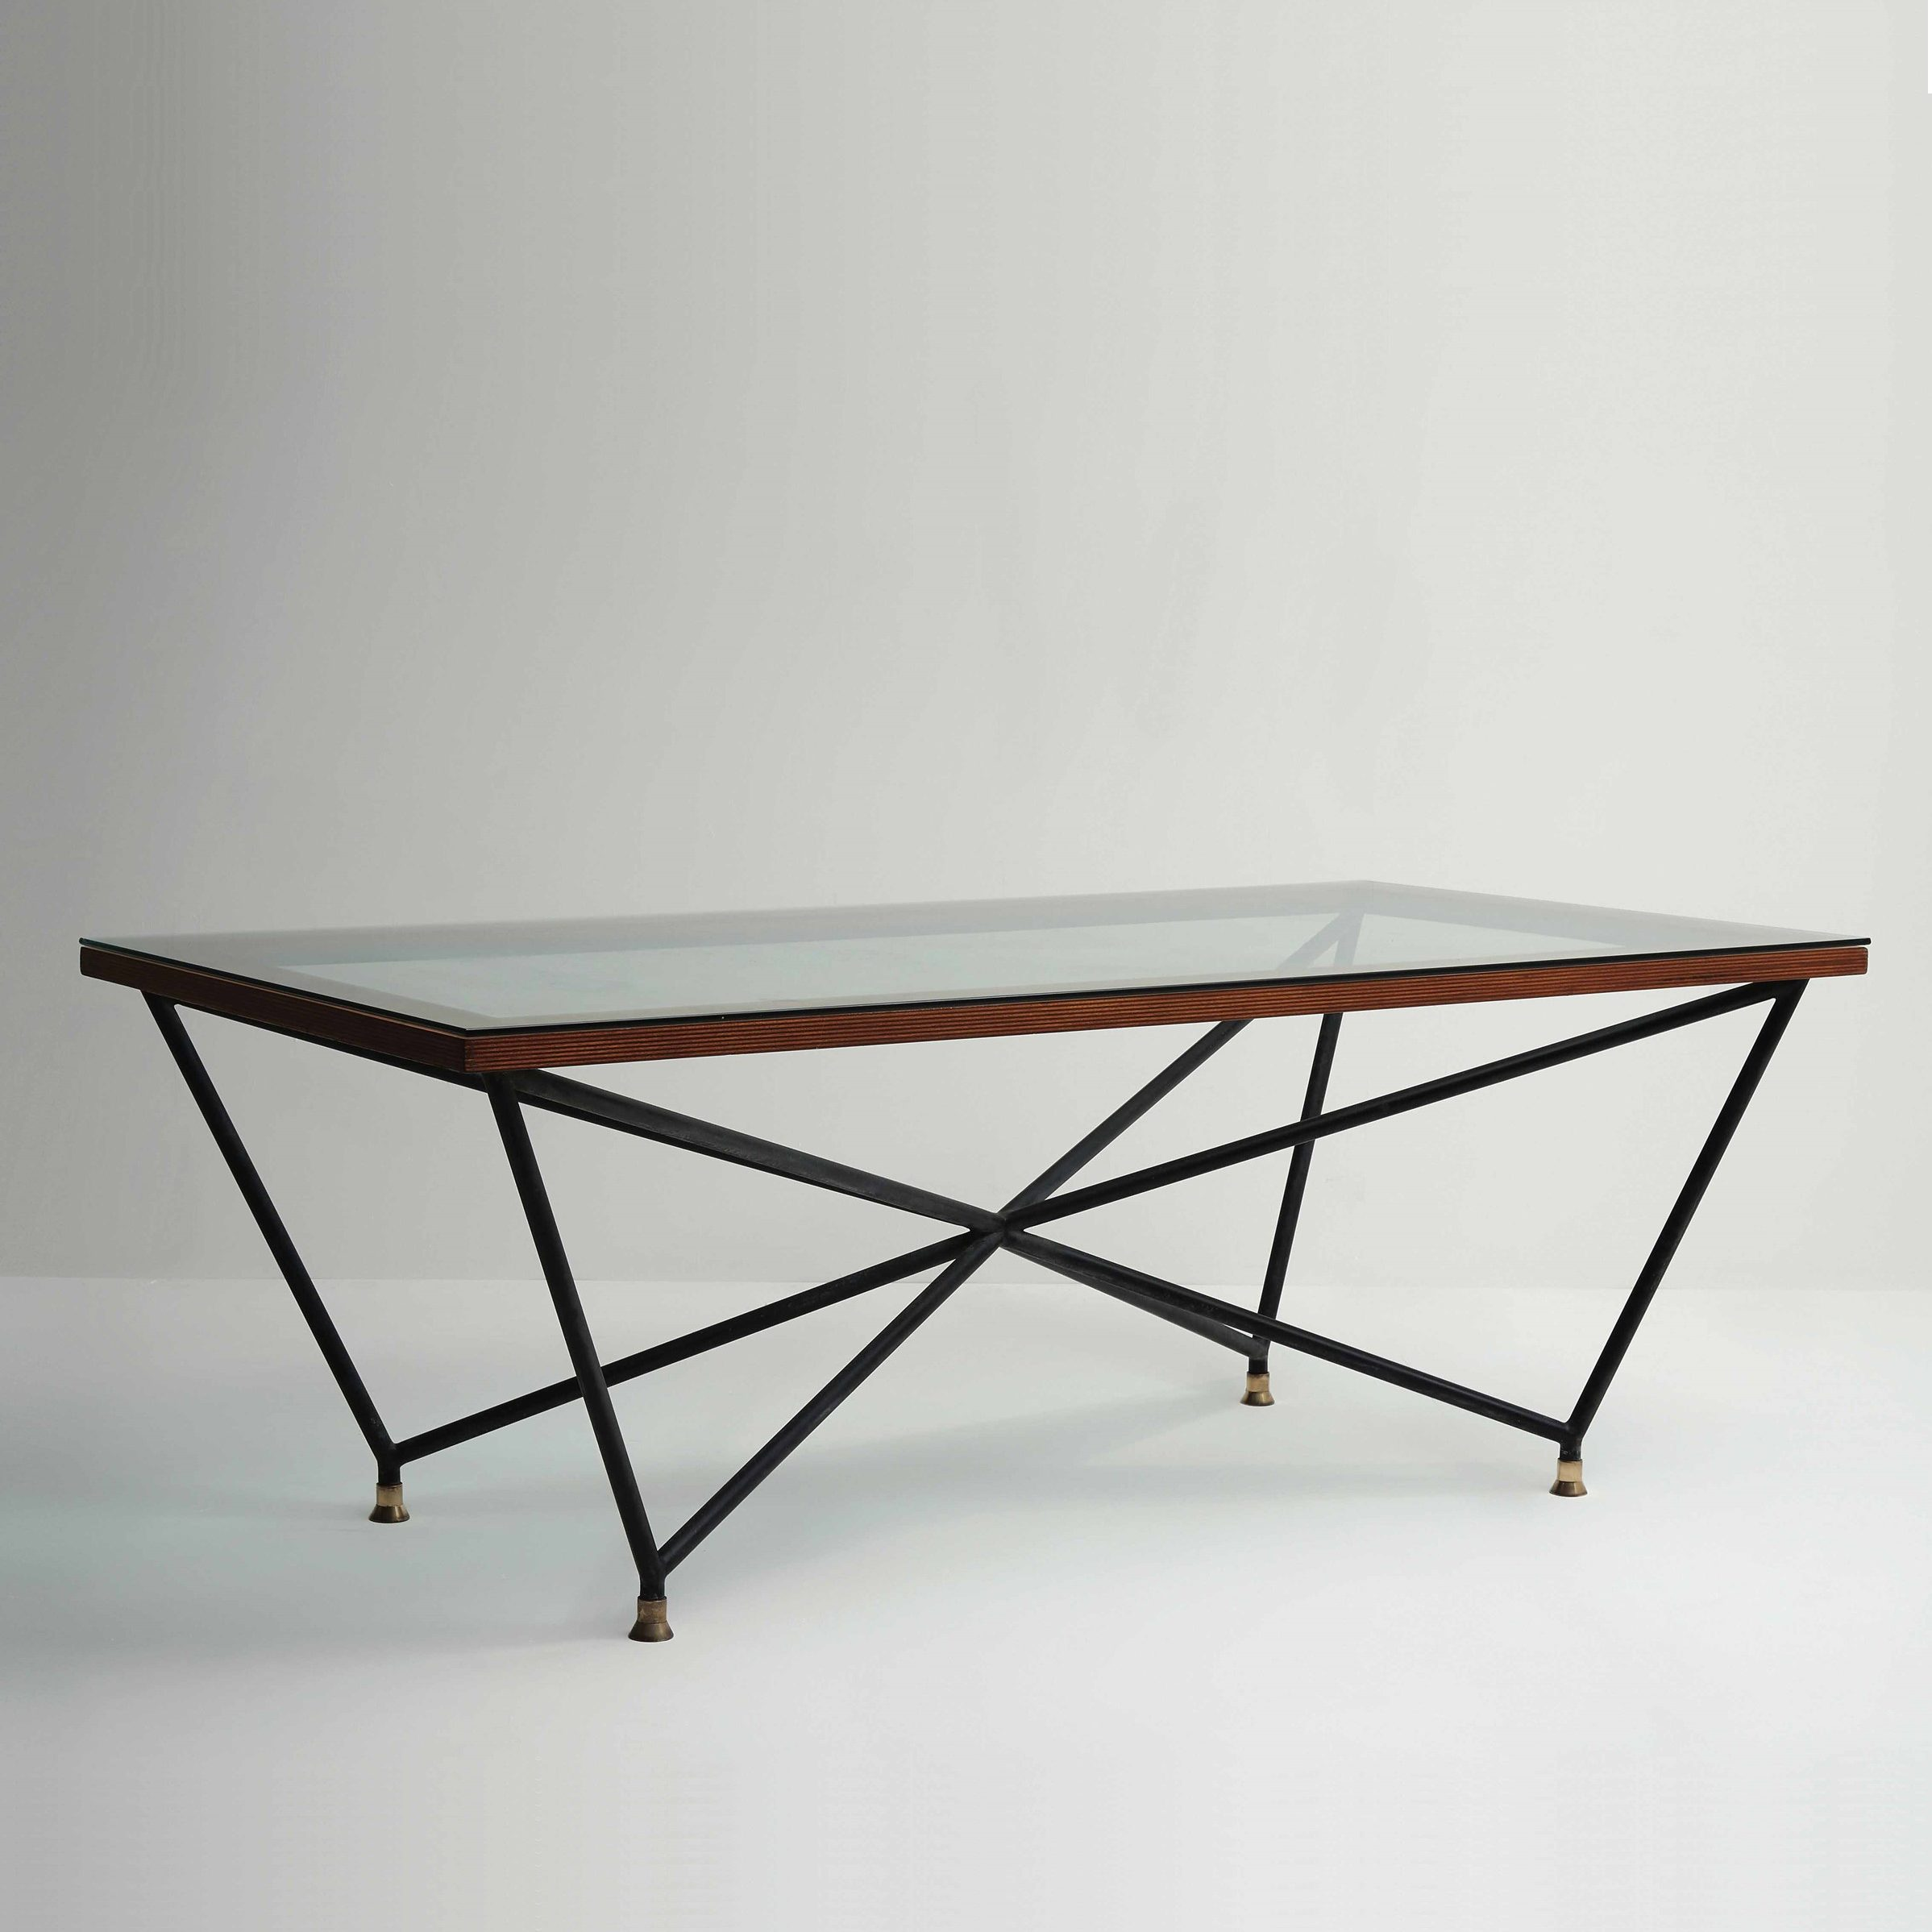 Giovanni Ferrabini |                                  Iron and glass dining table